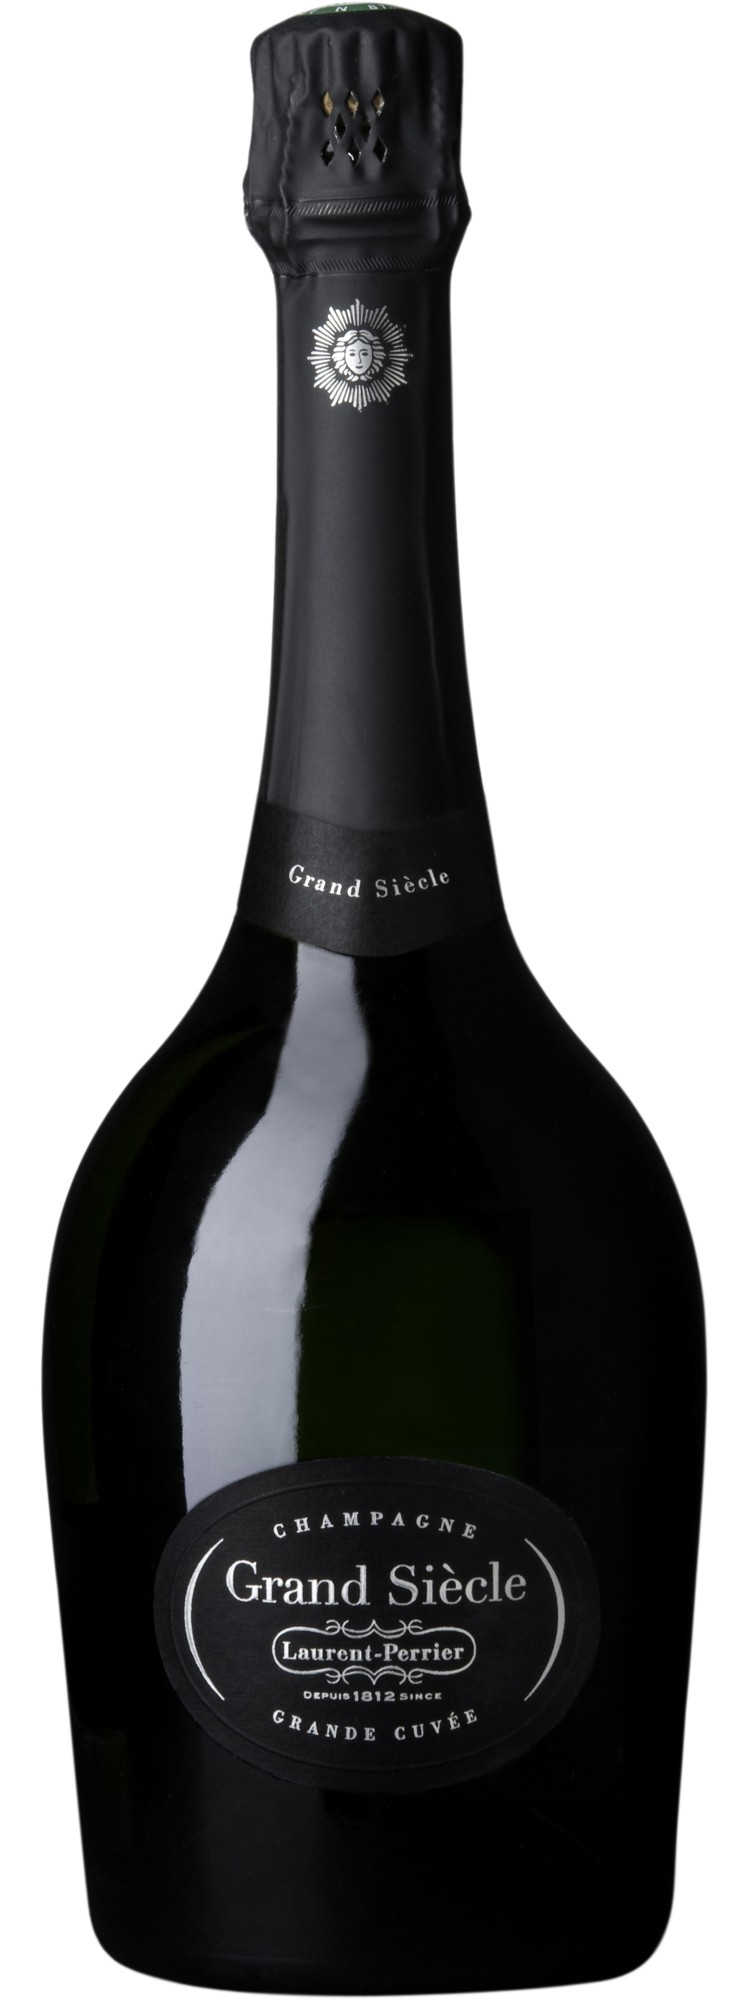 Laurent-Perrier - Grand Siècle